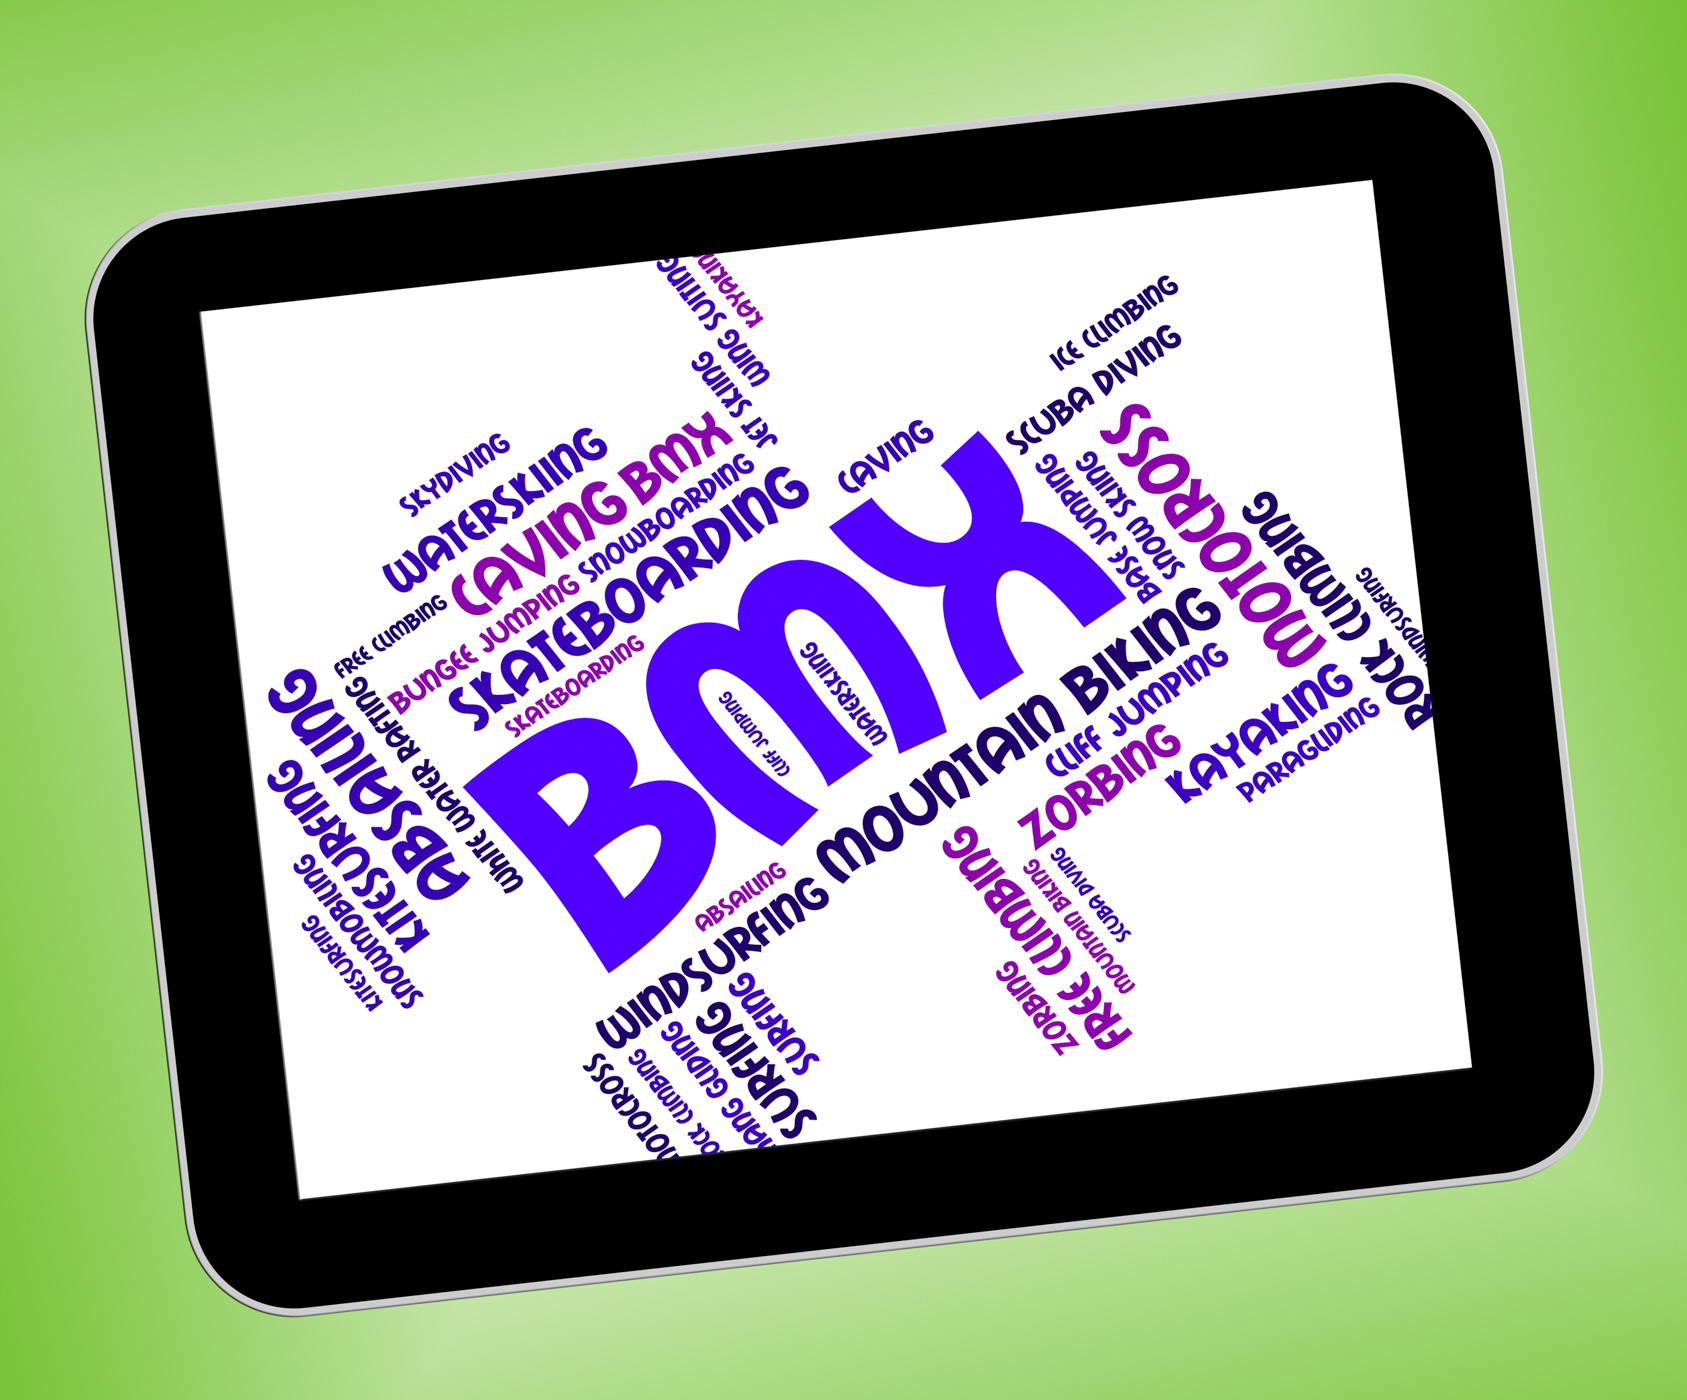 Bmx bike words means bicycle riding and wordcloud photo